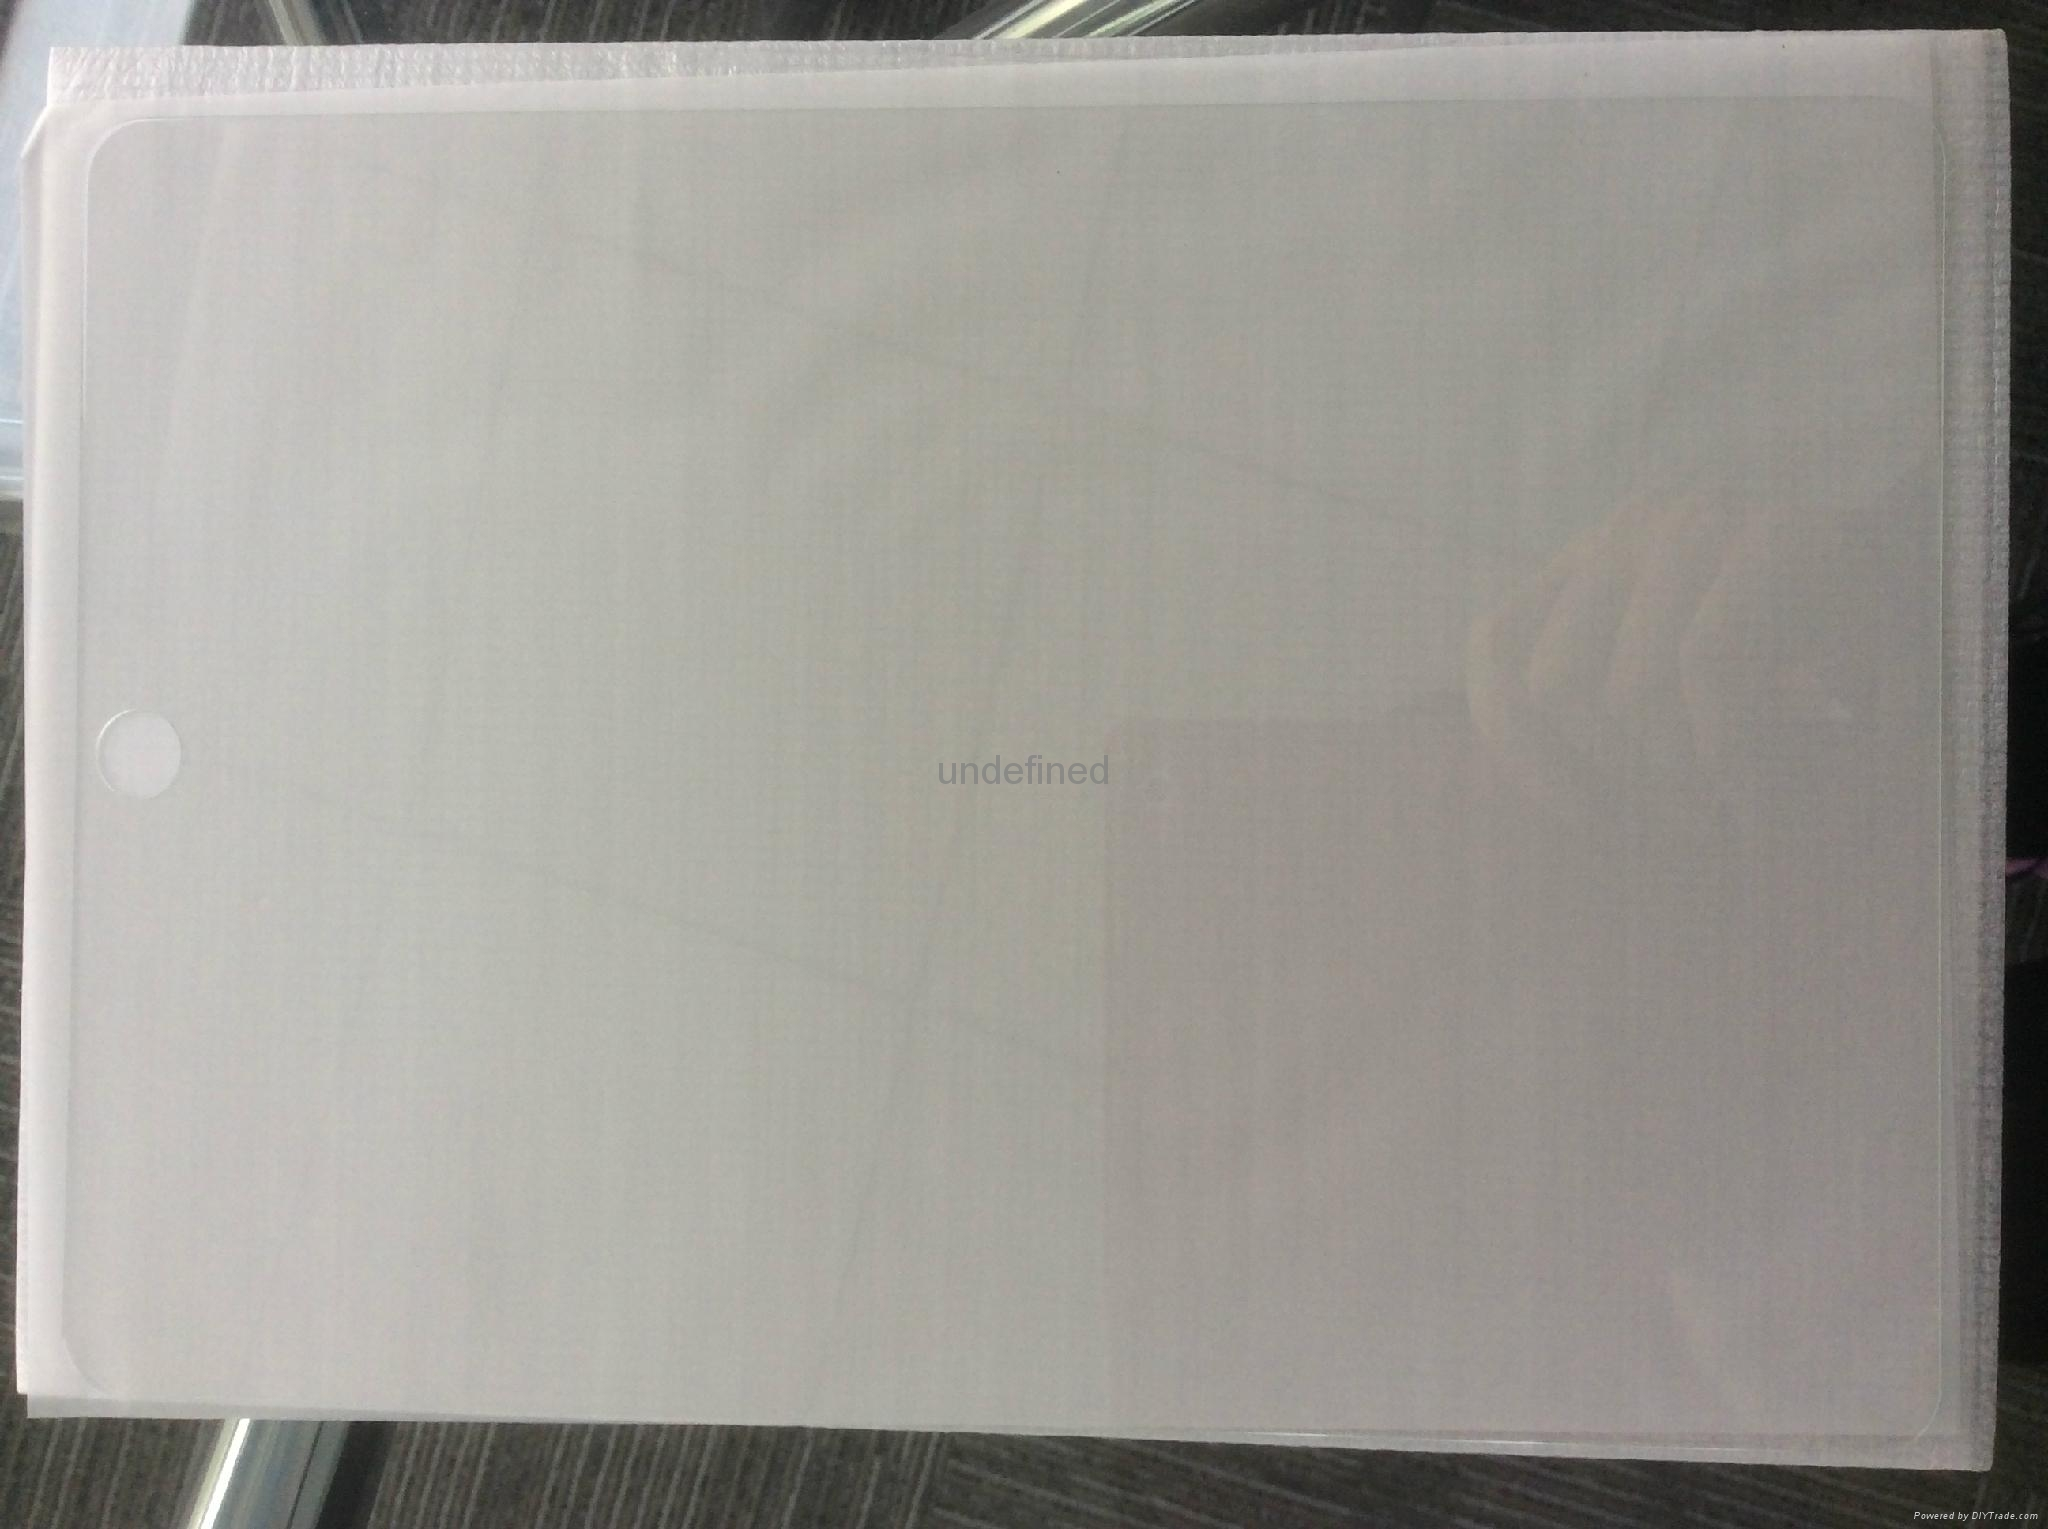 i-pad tempered glass screen protector 2